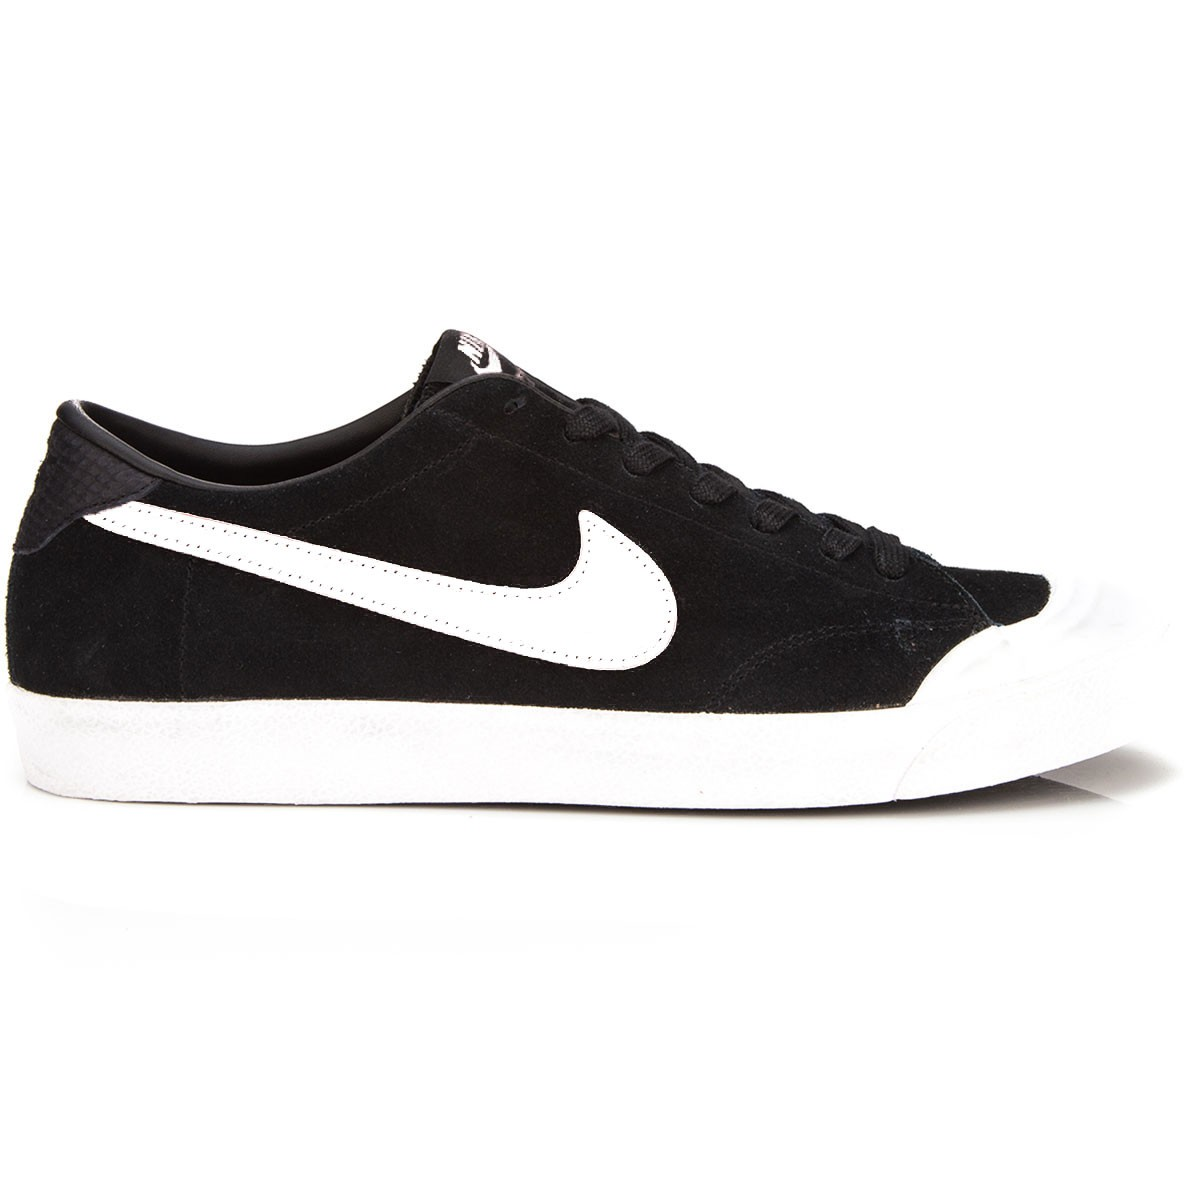 4893ddea27430 Nike SB Zoom All Court CK QS Shoes - Black White - 7.0